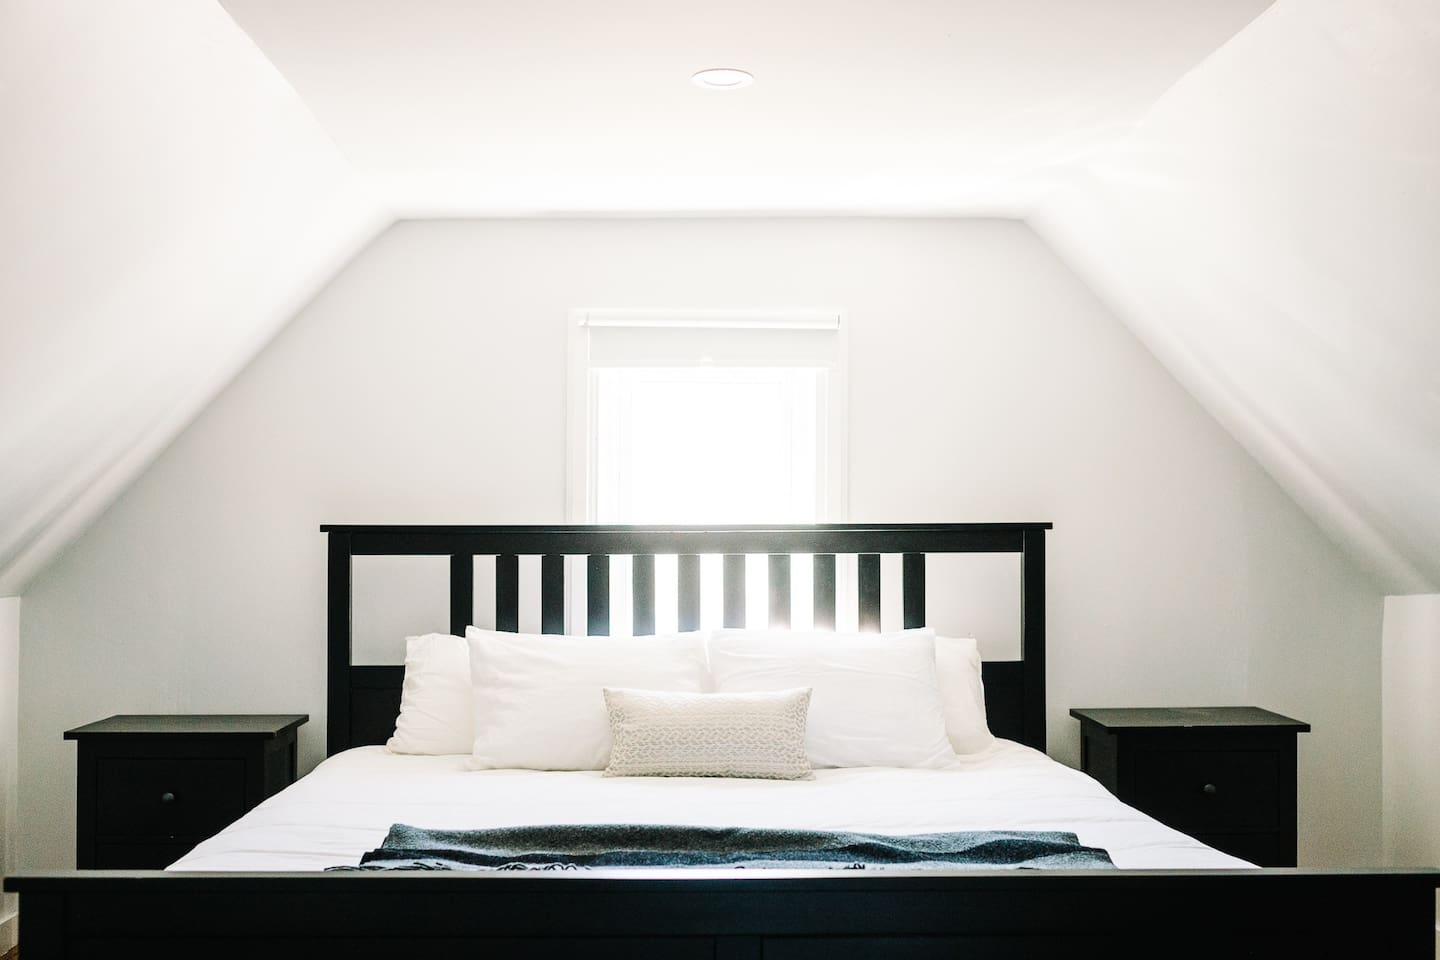 King size bed in the loft.